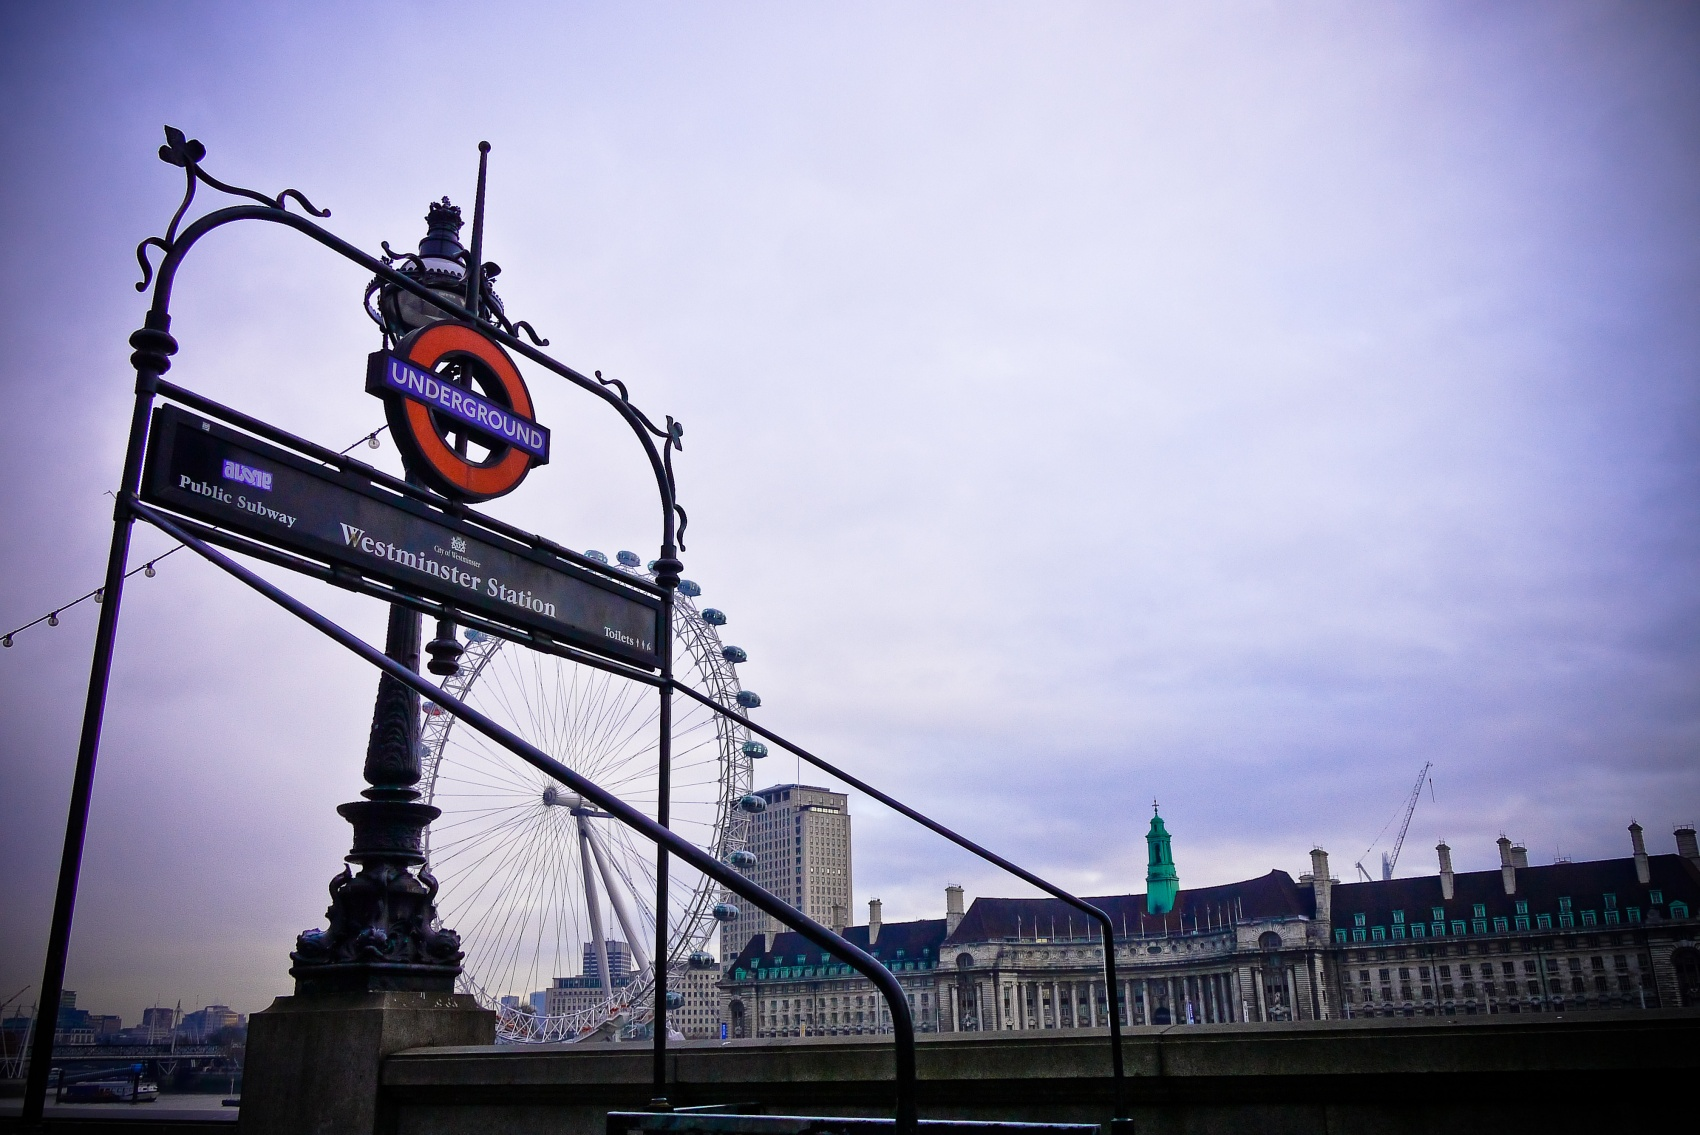 Caught In Time - London